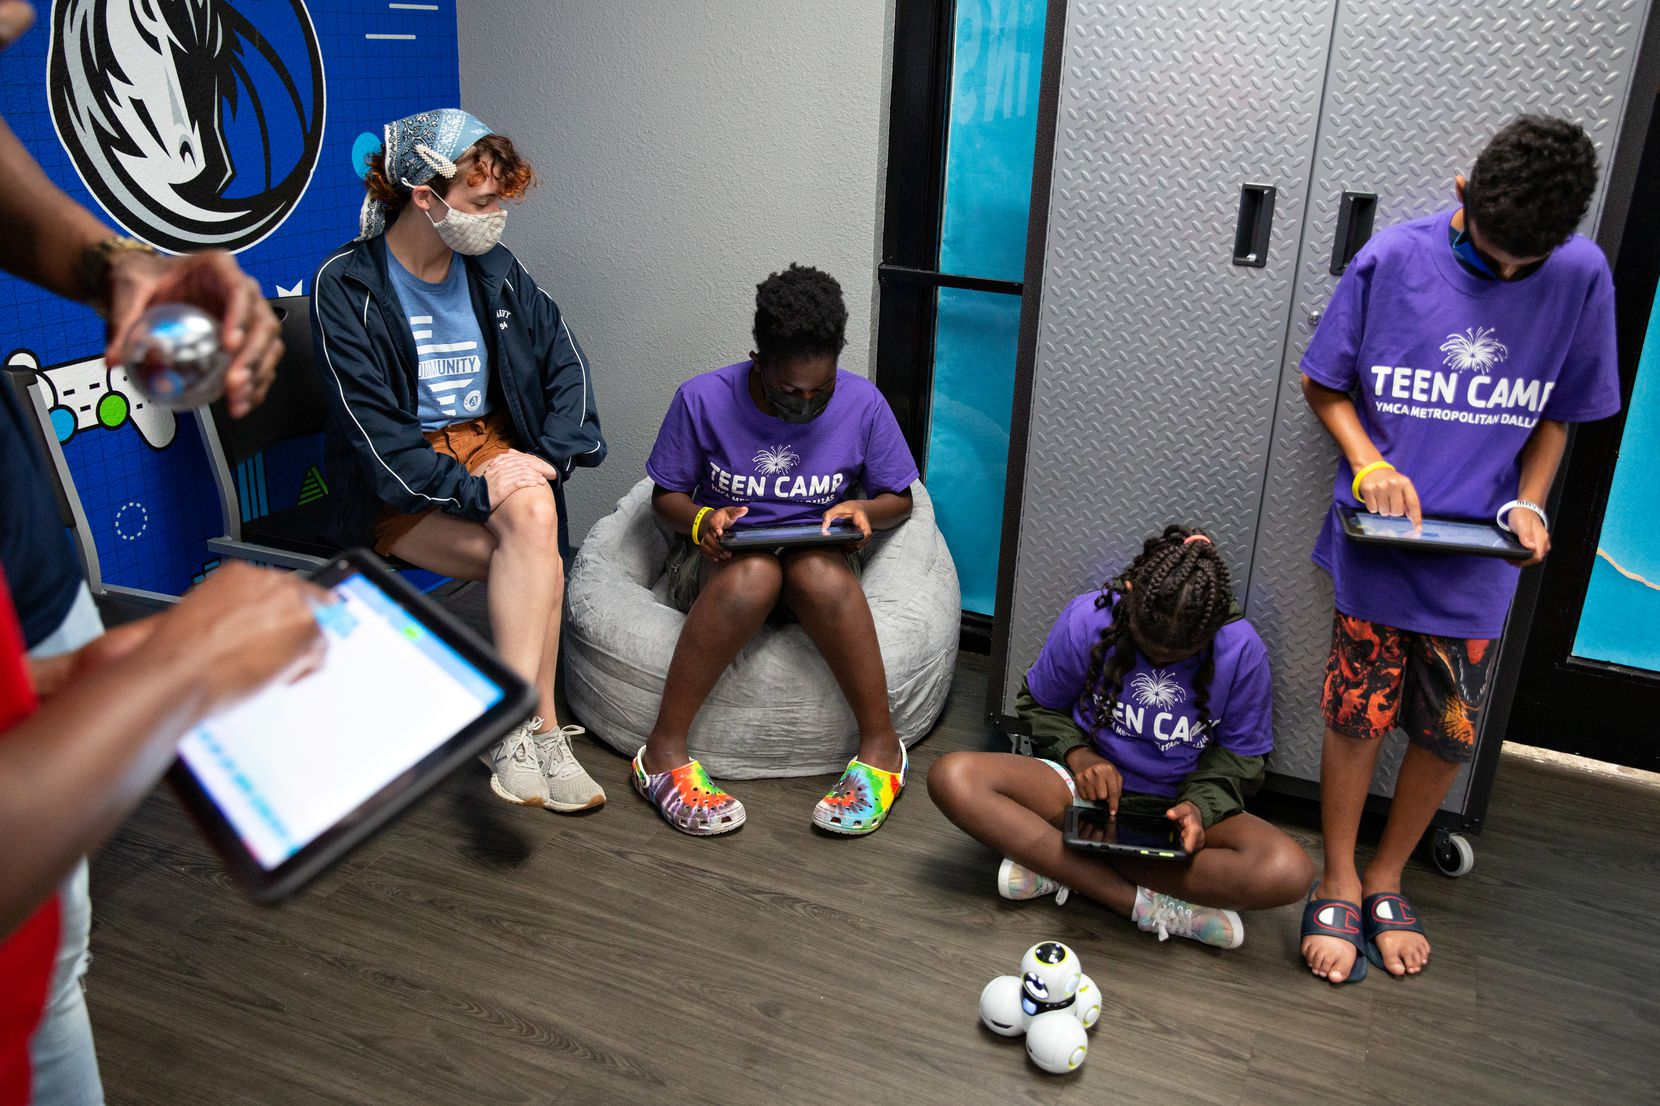 YMCA teen camp counselor Hannah McClellan watches Heaven Tell, 12, Deknea Witherspoon, 11, and Ishmael McNeil, 12, play with iPads and robotics at the Mavs Foundation's unveiling of its newest reading and earning center renovation at the Moorland YMCA at Oak Cliff on August 3, 2021. (Shelby Tauber / Special Contributor)